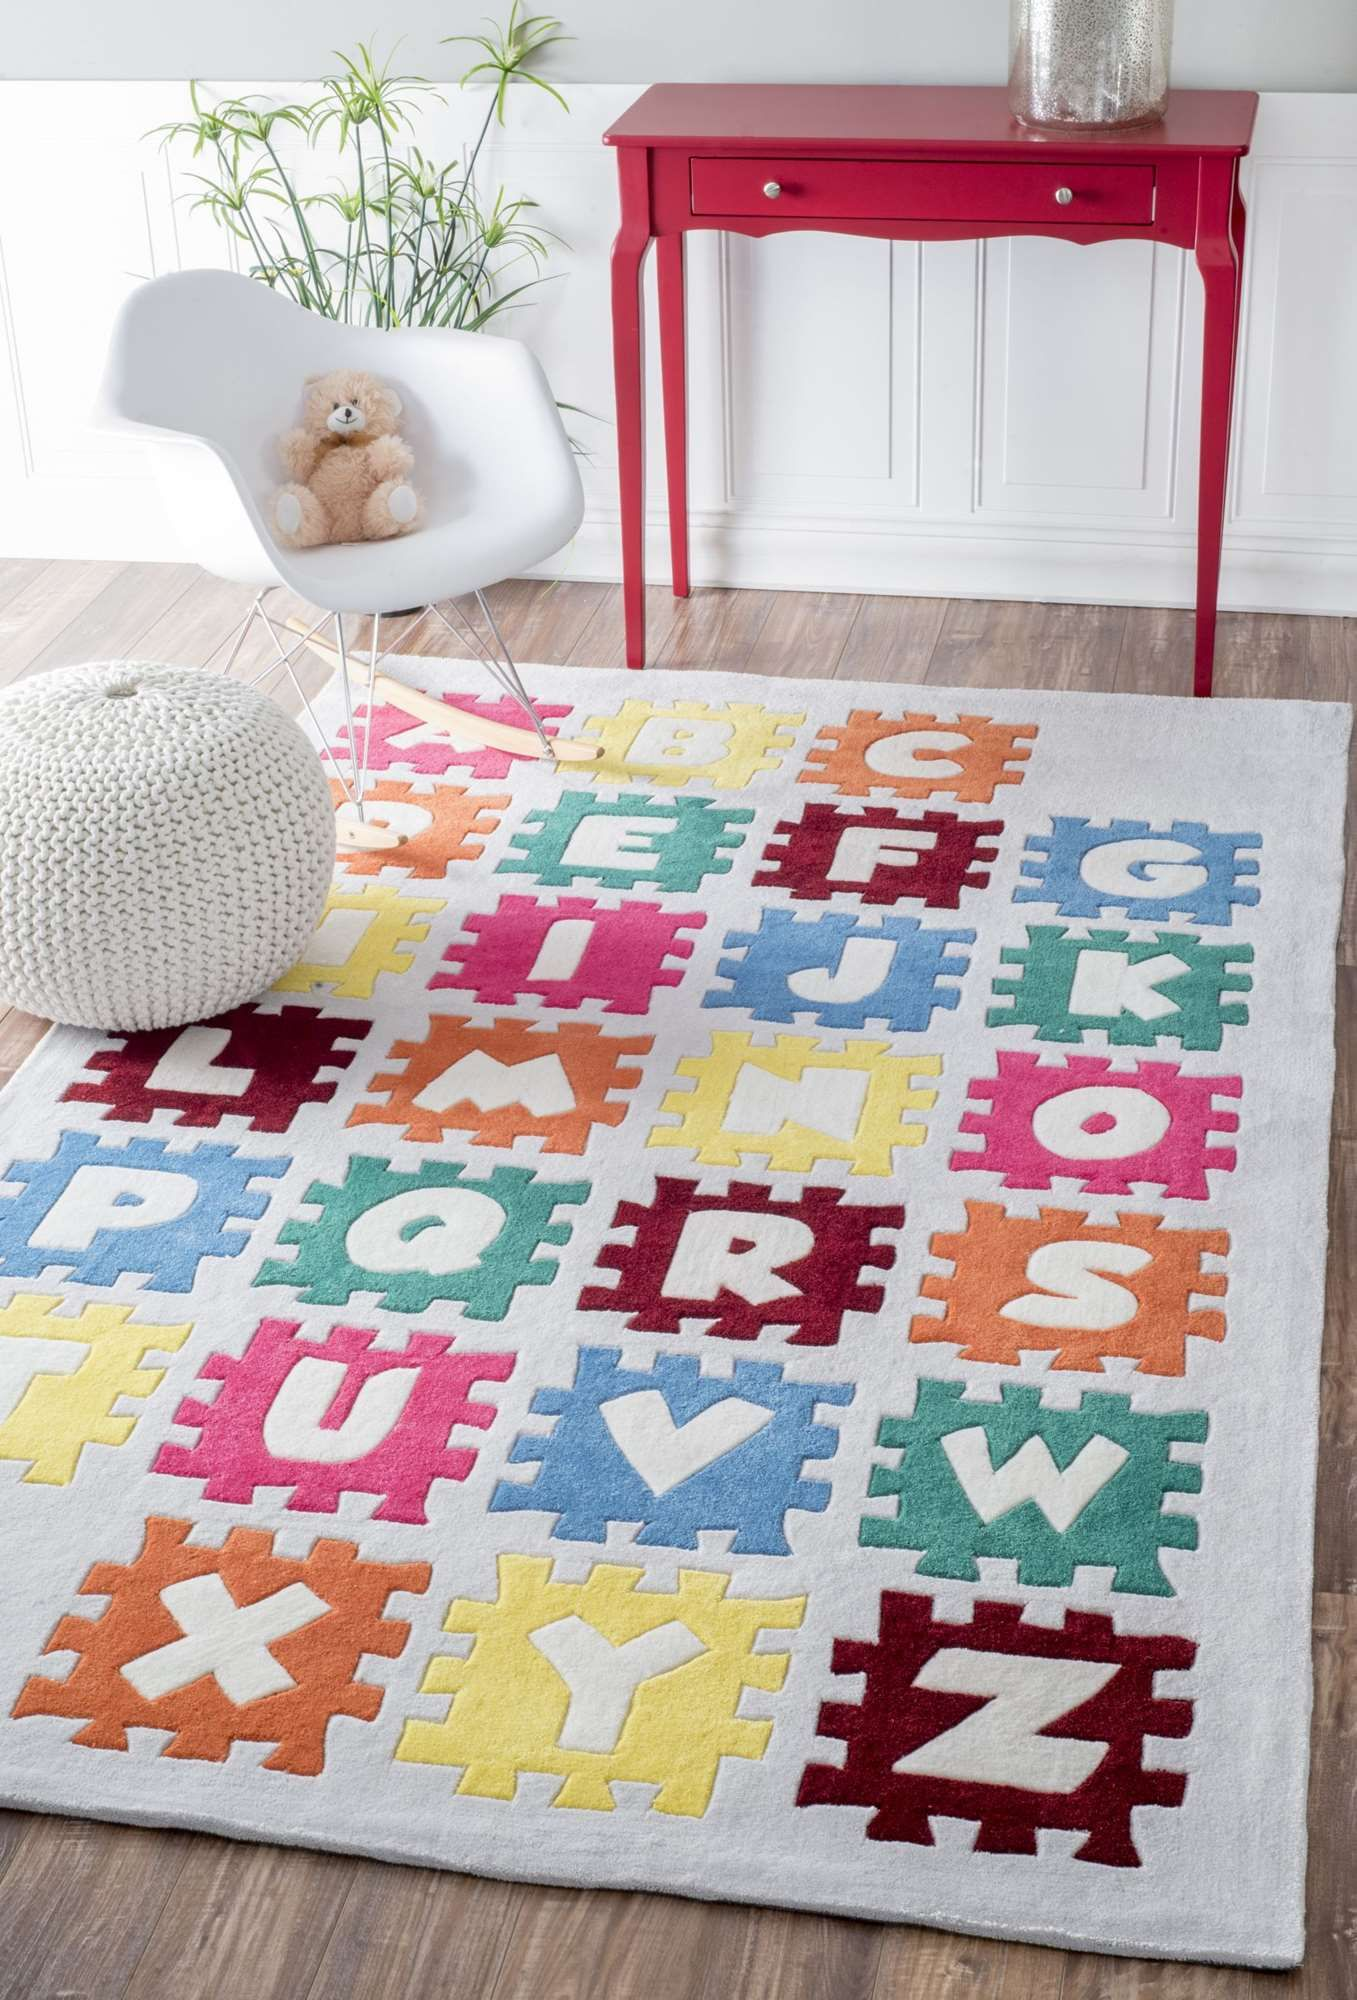 Rugs Usa Area Rugs In Many Styles Including Contemporary Braided Outdoor And Flokati Shag Rugs Buy Rugs Playroom Area Rugs Playroom Rug Kids Playroom Rugs